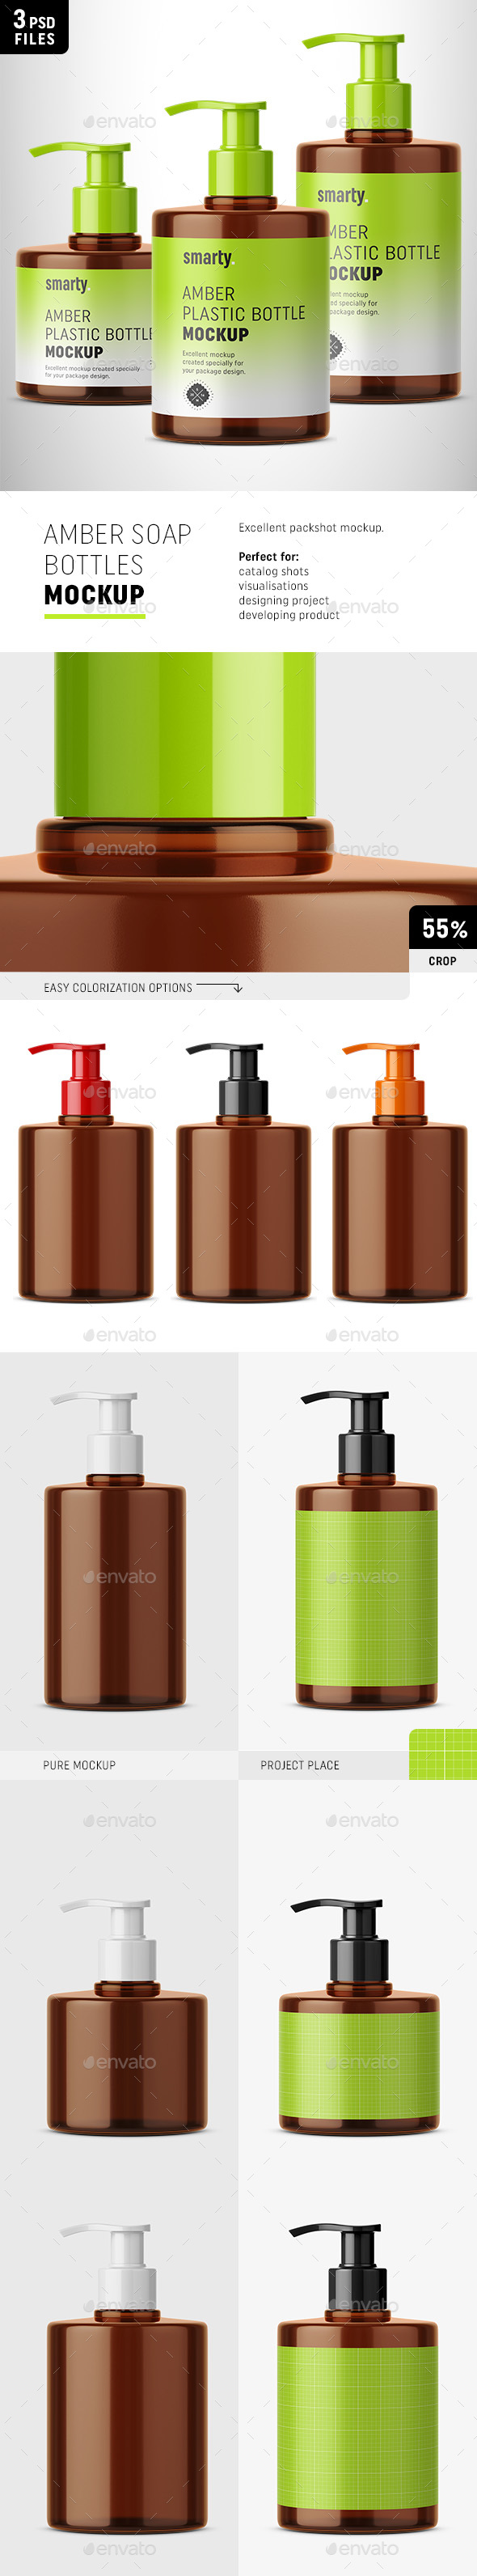 Amber Soap Bottle with Pump - Beauty Packaging